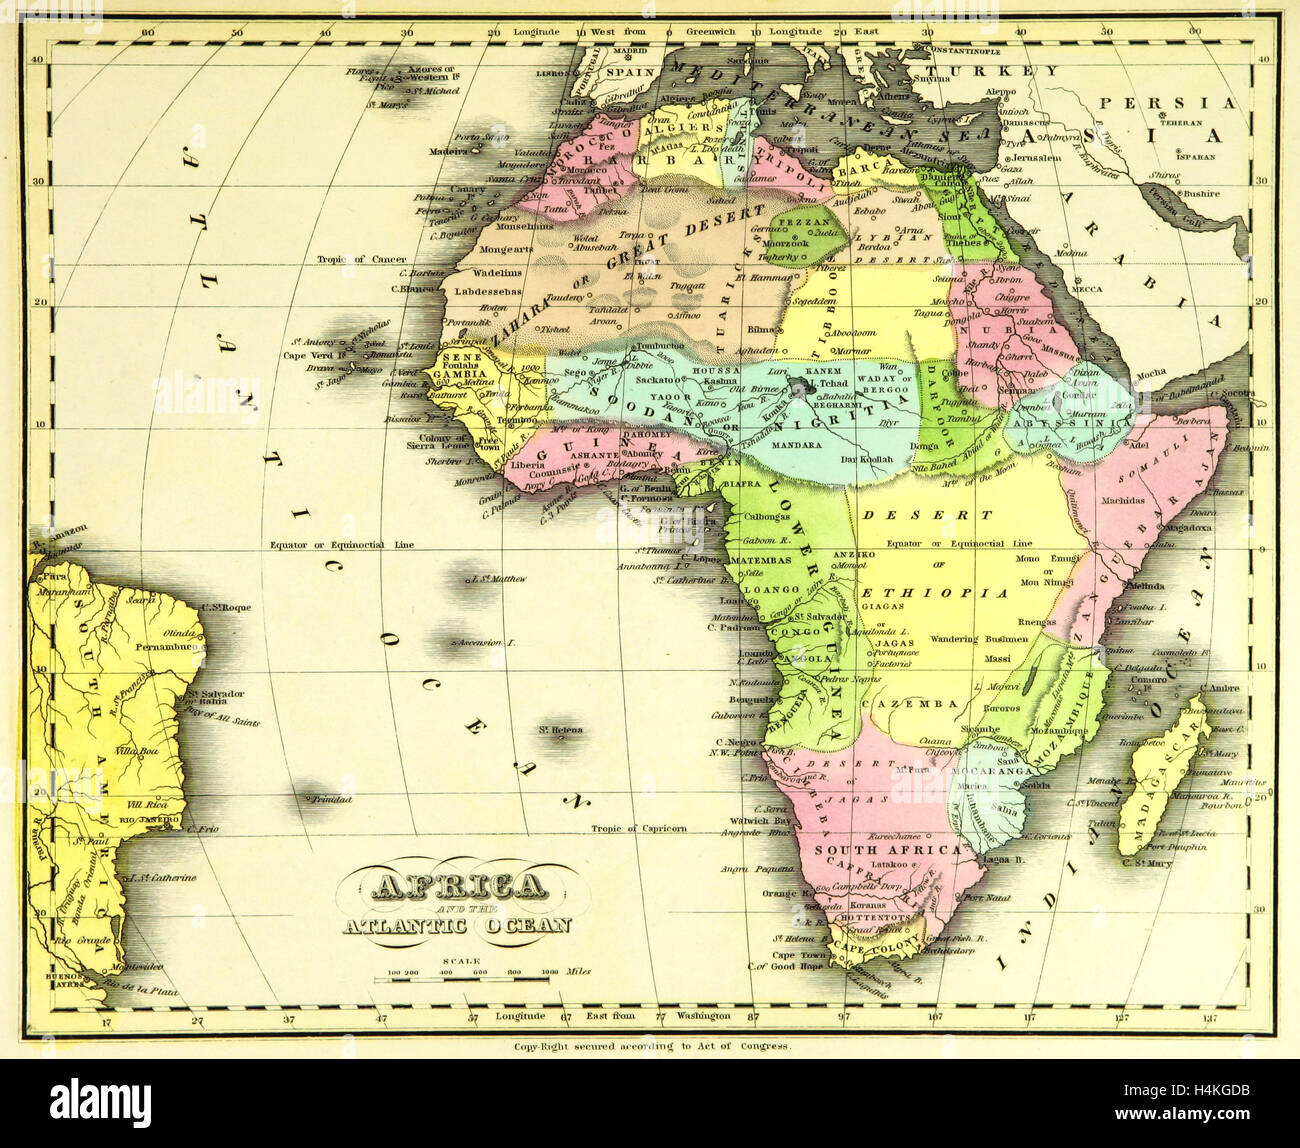 Map Africa, 19th century engraving Stock Photo: 123361207   Alamy